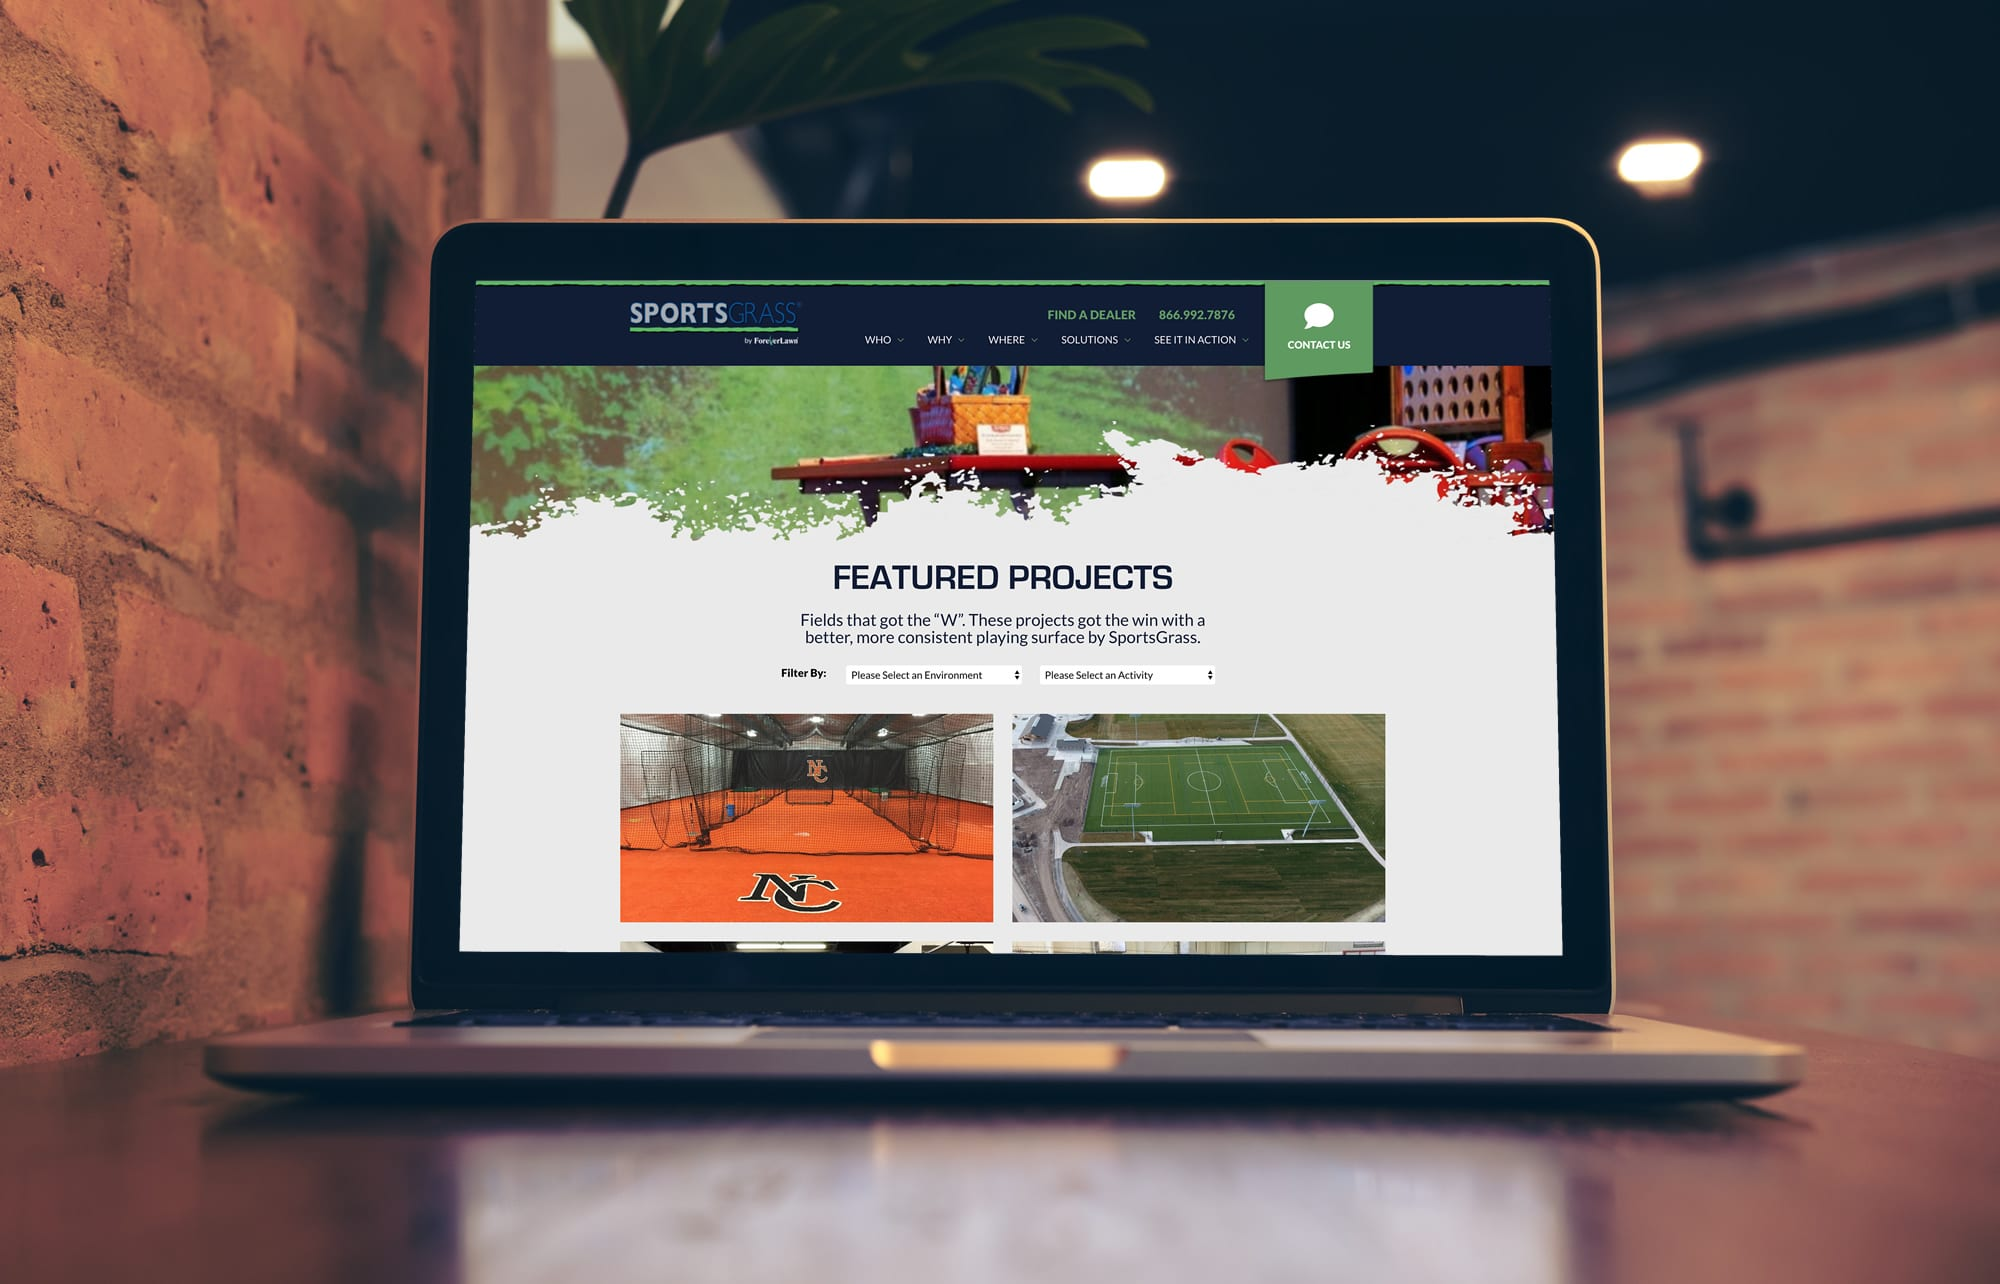 sports-grass-featured-projects